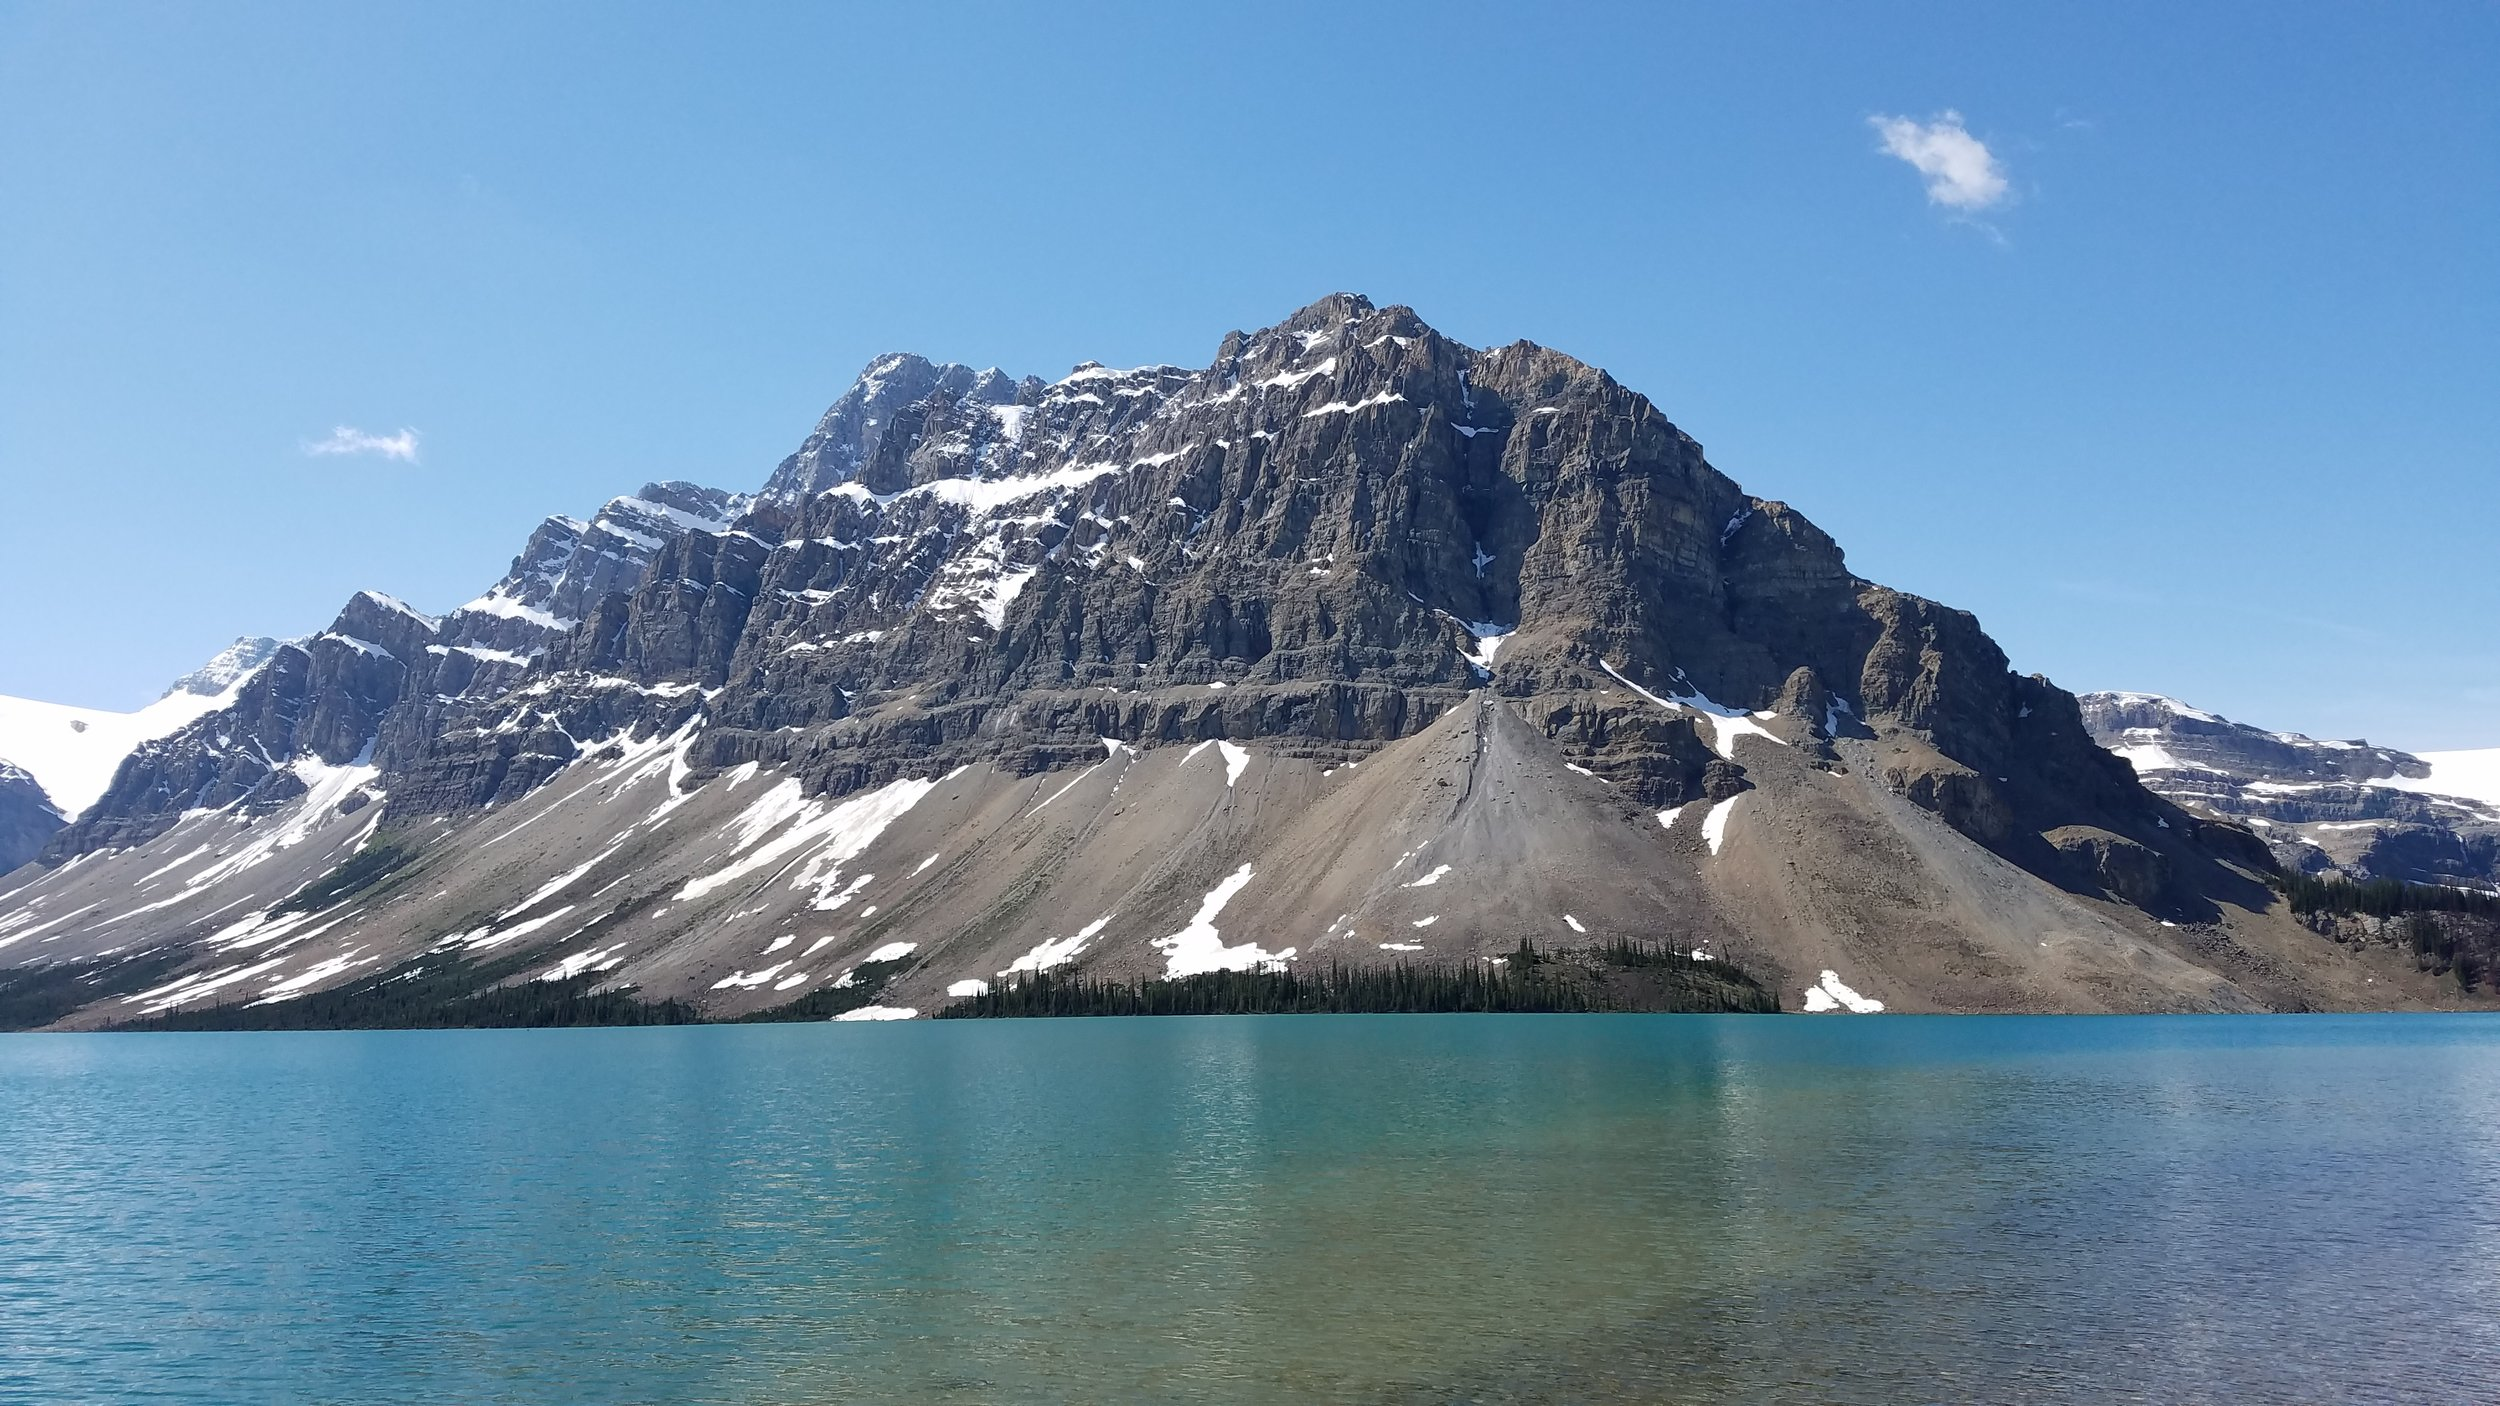 Our visit to Bow Lake!